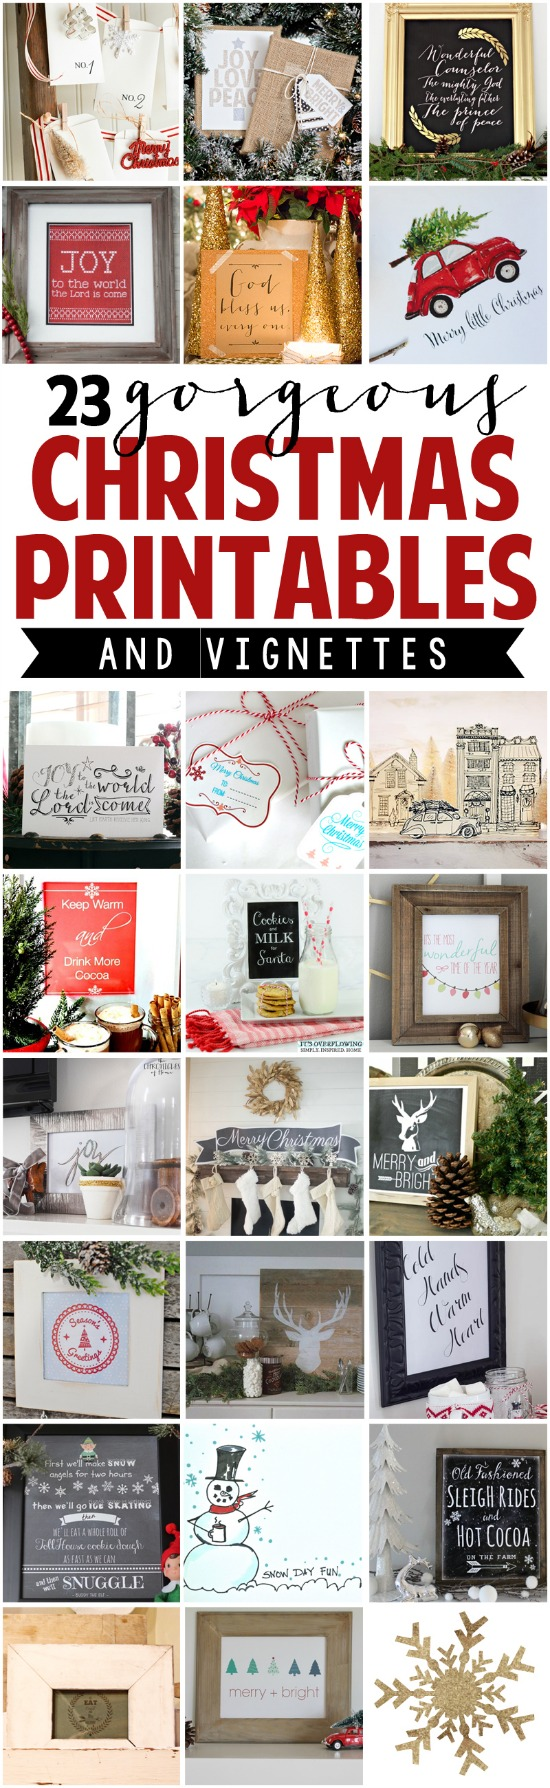 23 Gorgeous Christmas Printables with Display Ideas eclecticallyvintage.com